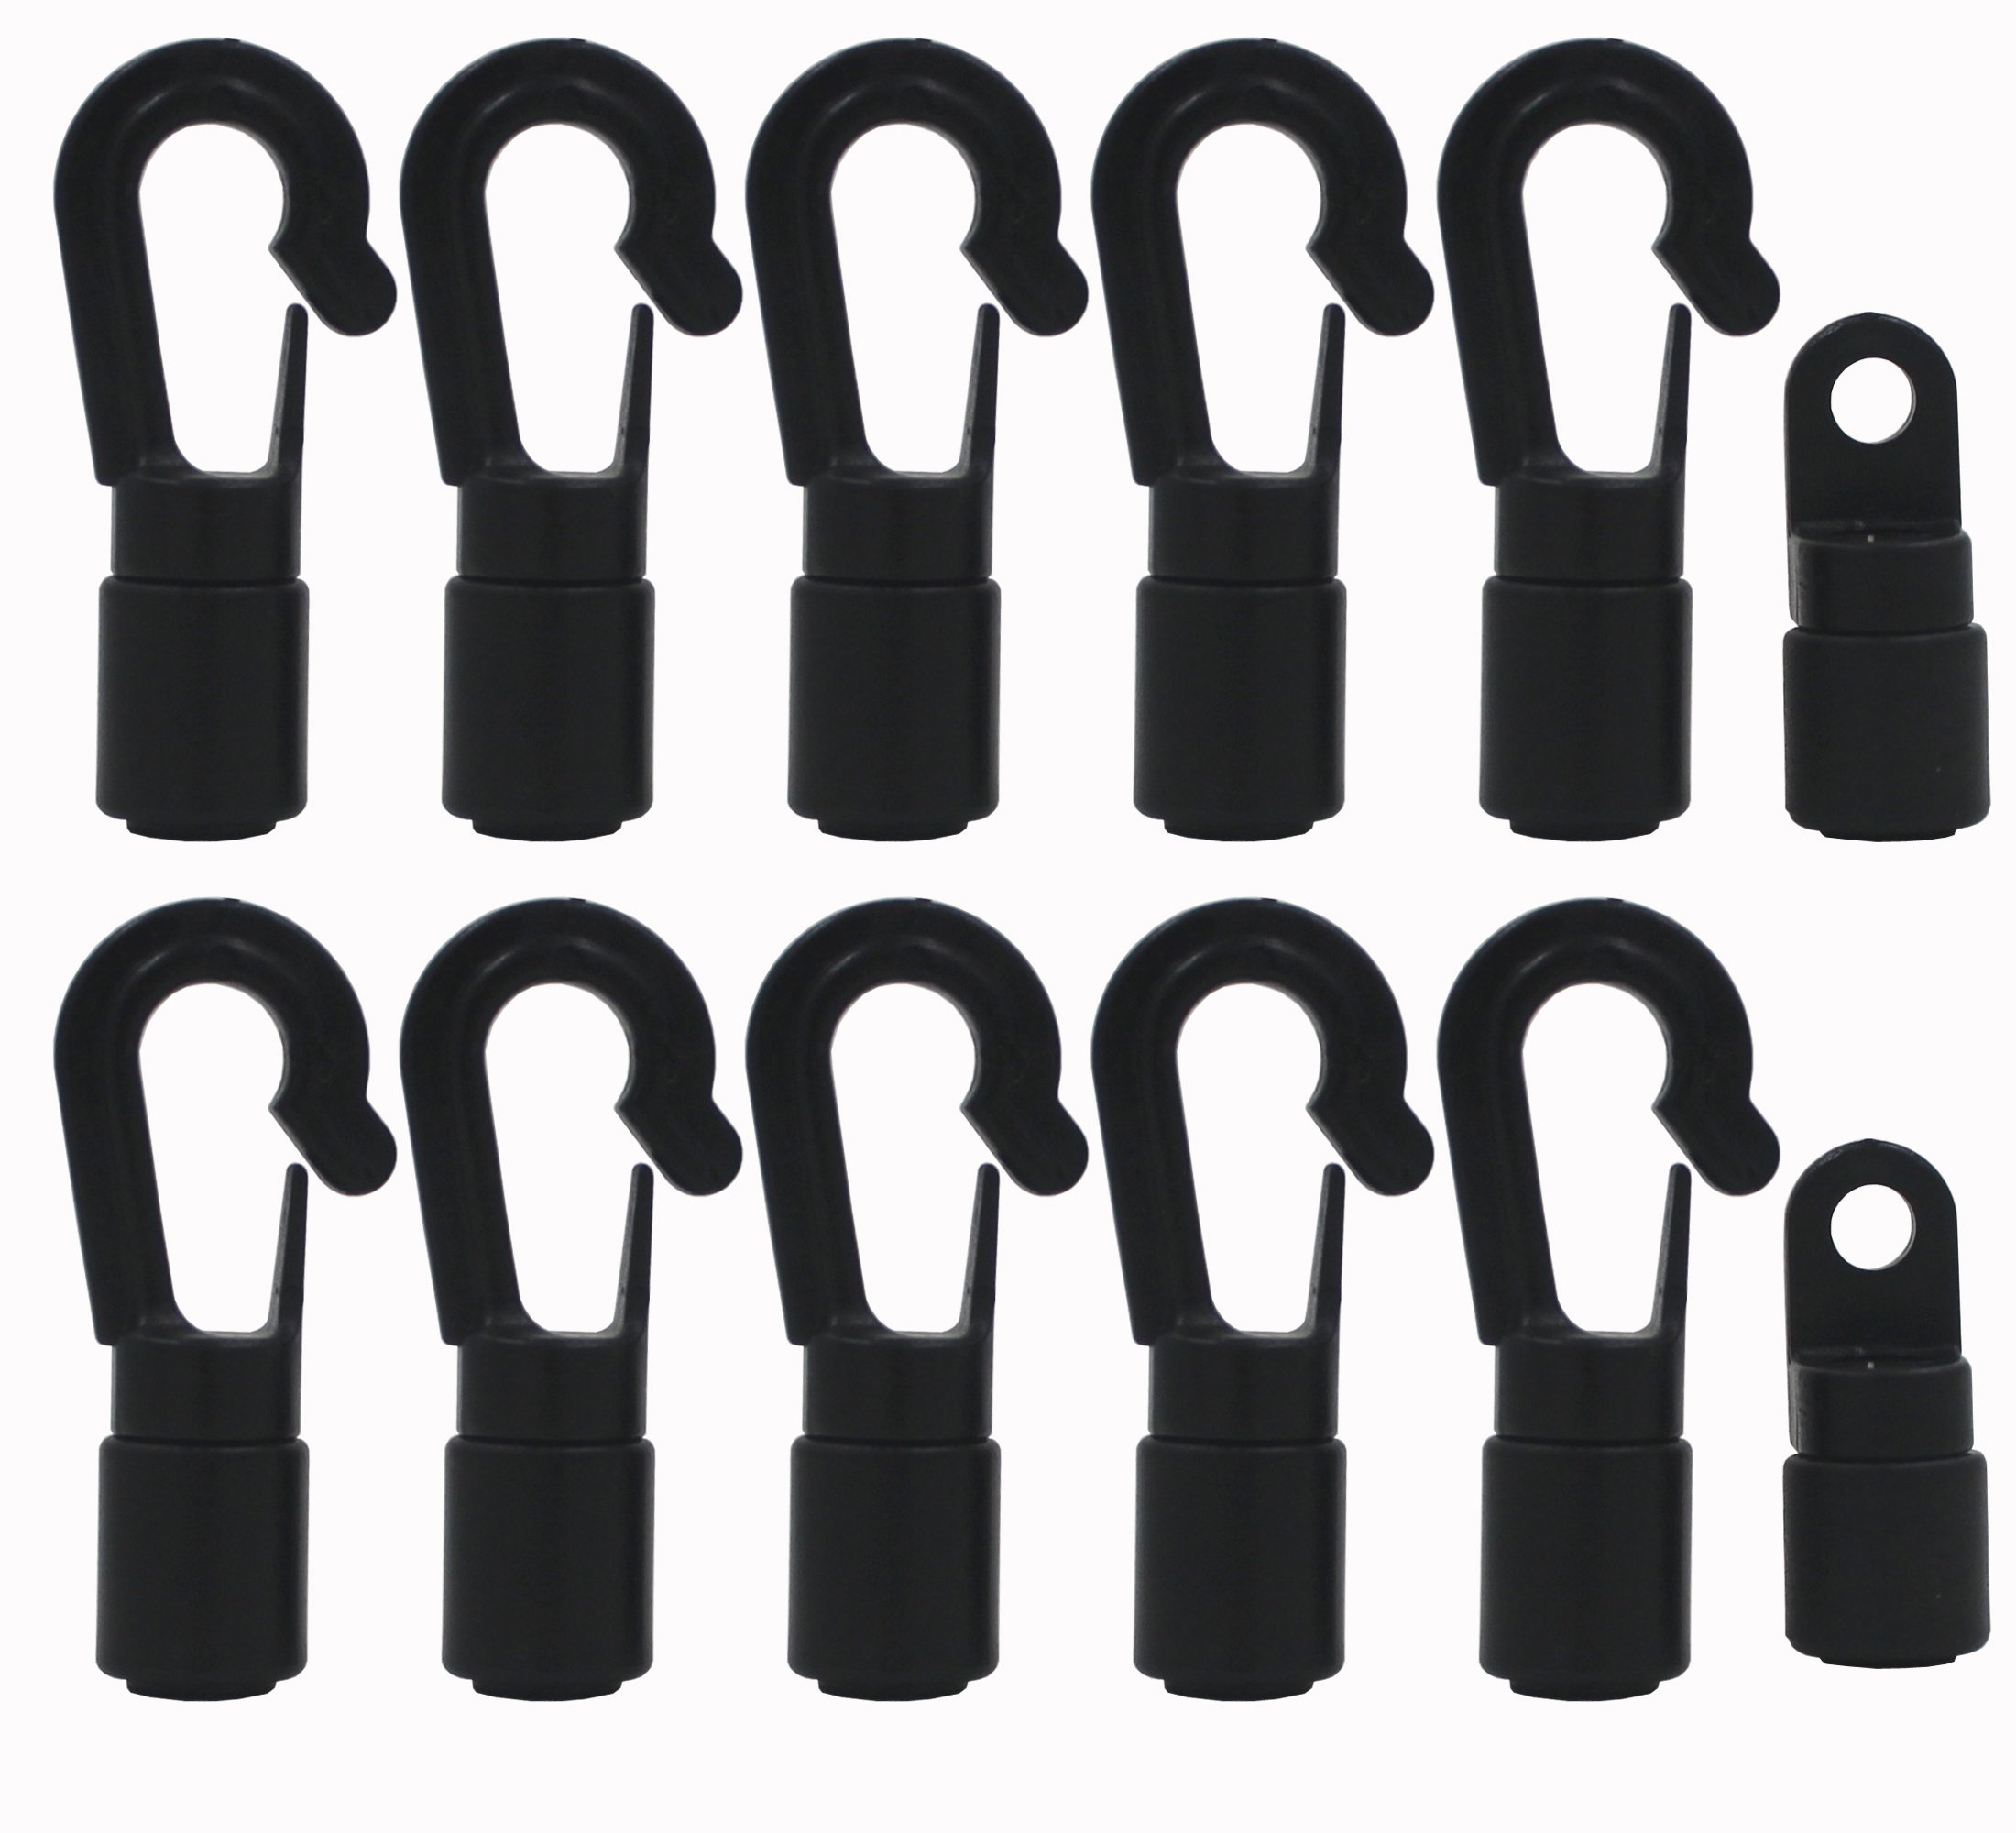 10 x Heavy Duty Shock Cord End Hooks Bungee Rope Accessories for Canoe Kayak